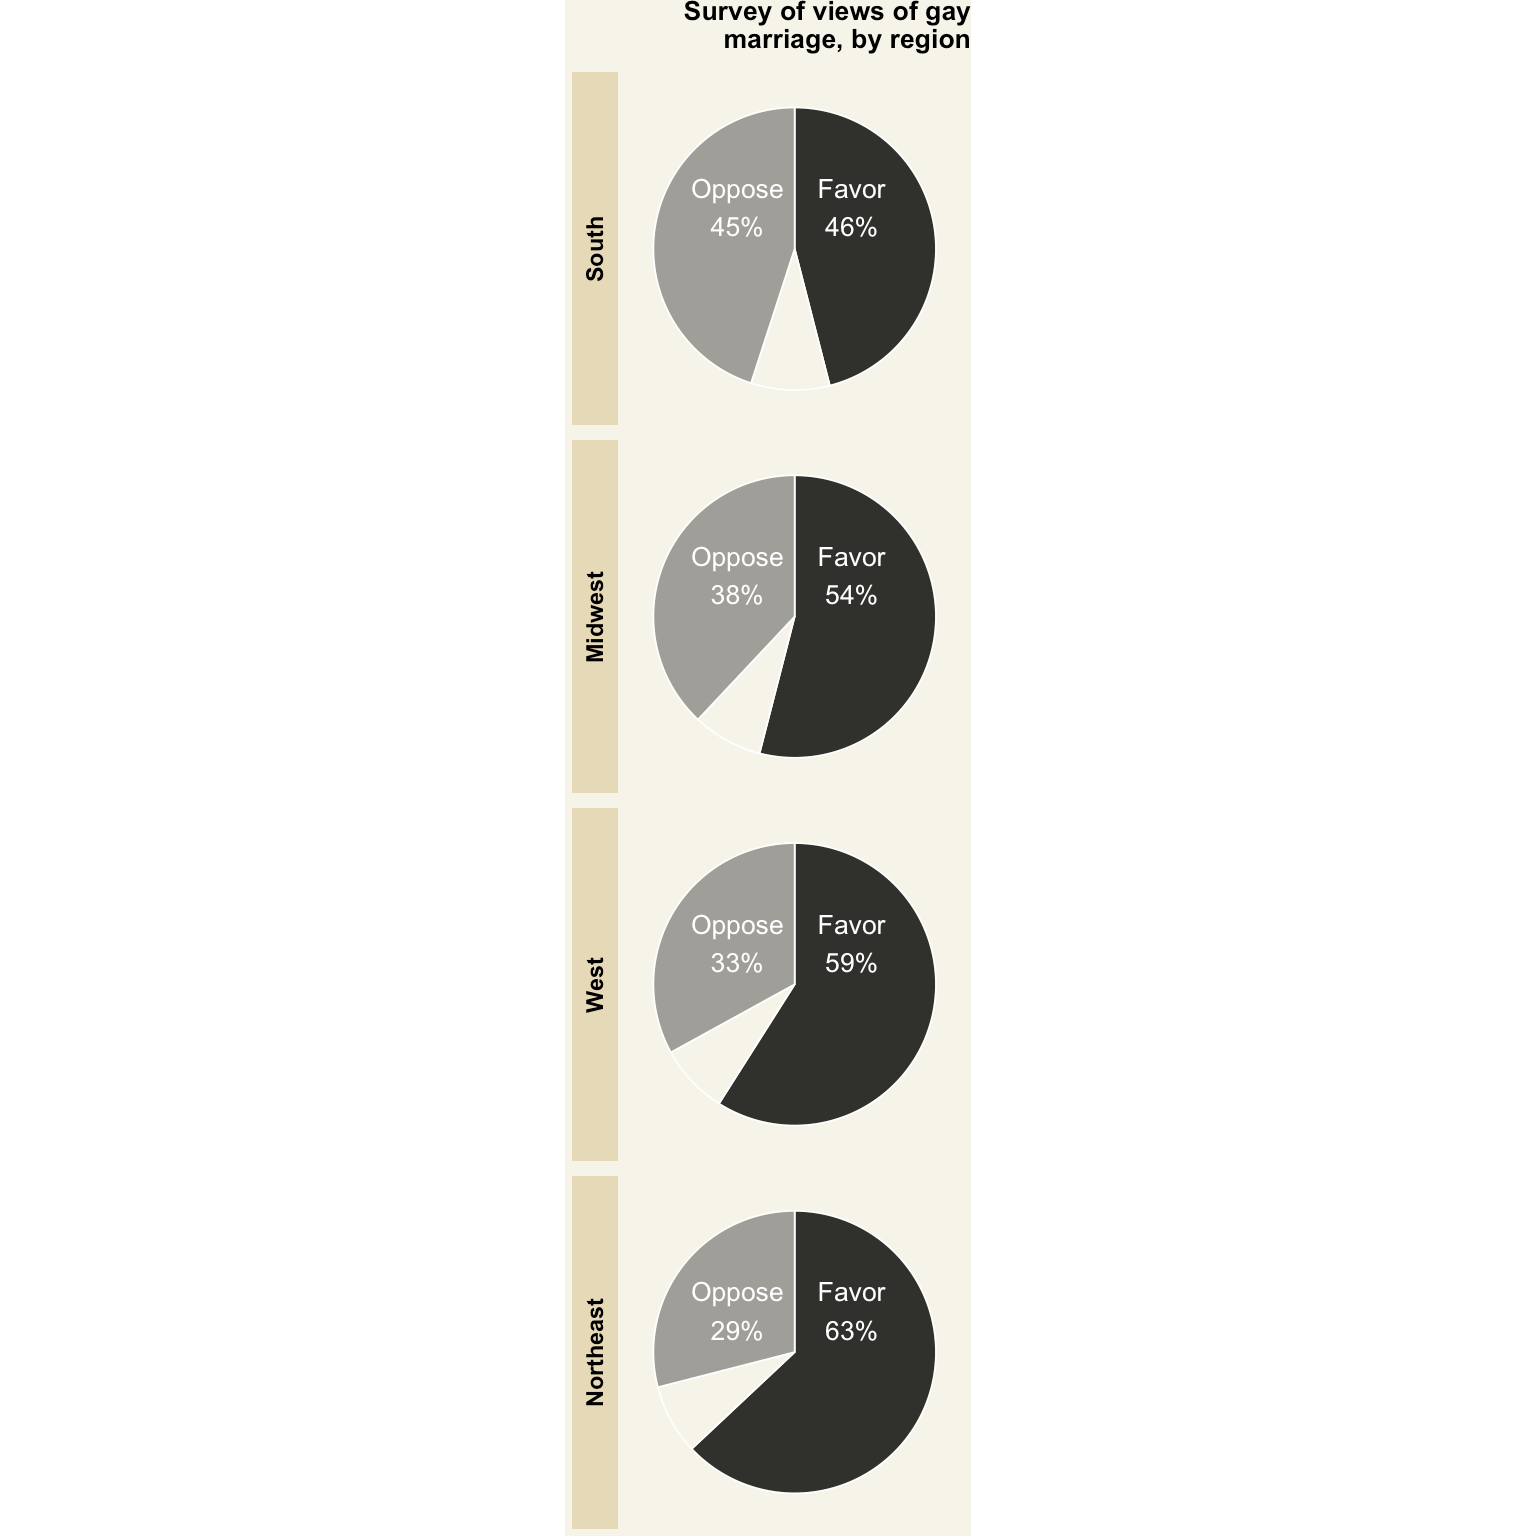 How to create a wall street journal data visualization in r i should say that a pie chart in ggplot is difficult to customize because you lose one axis next time i would try the base r pie chart nvjuhfo Gallery